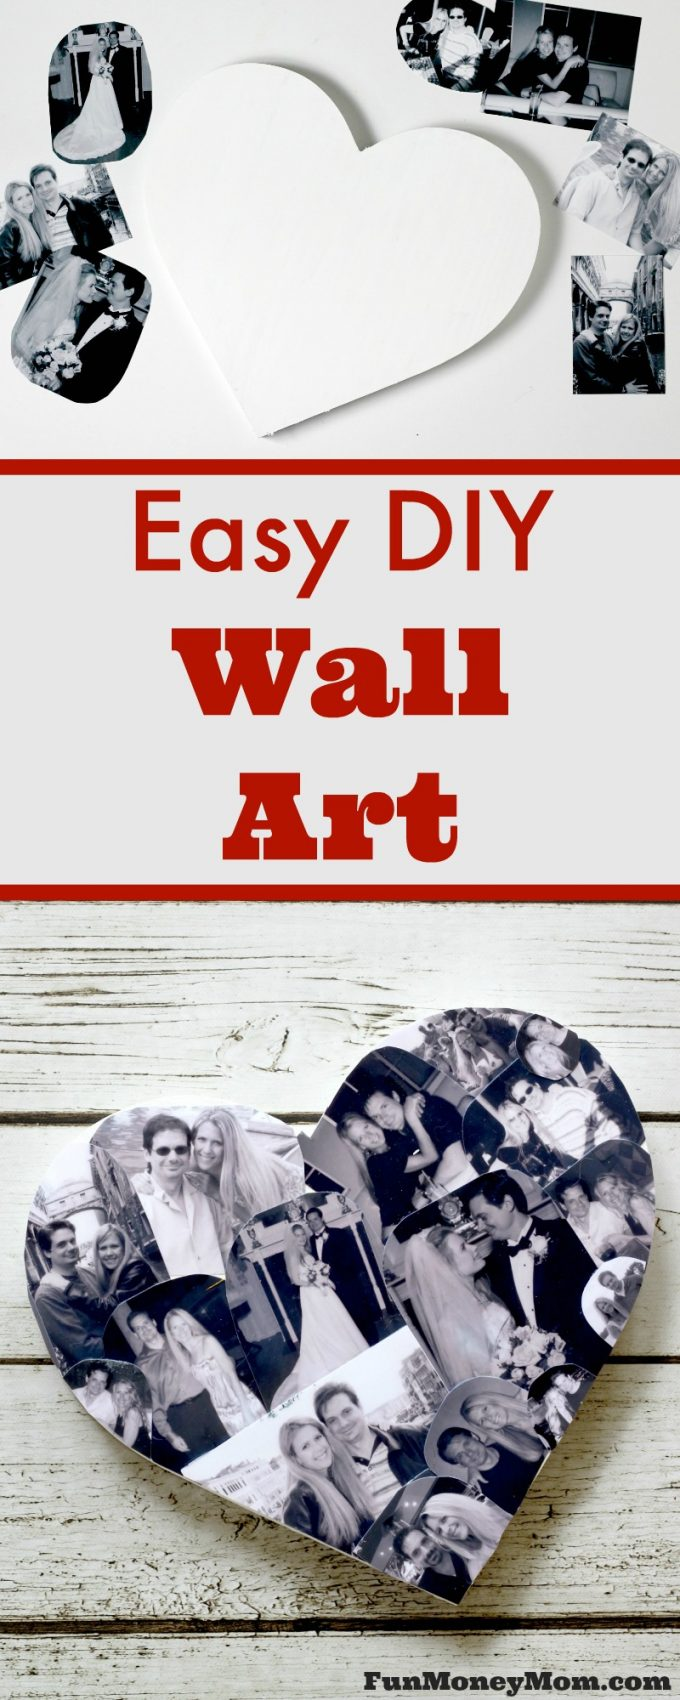 Looking for a great gift idea or just want some new wall decor? This DIY Wall Art is easy to make and looks beautiful on any wall! It even makes a great kids craft.